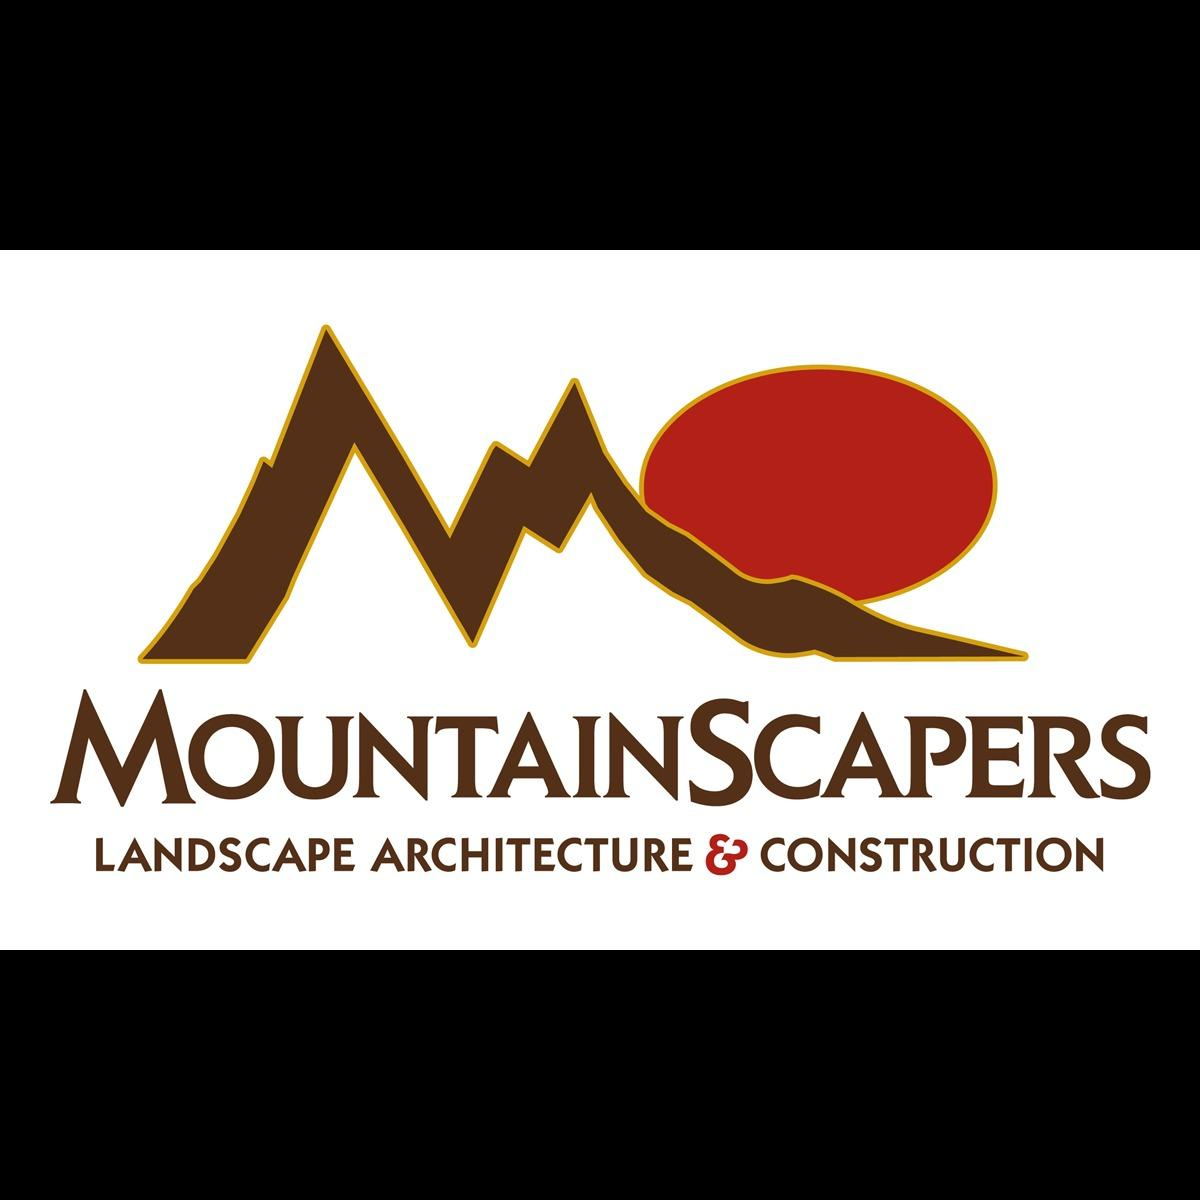 Mountainscapers Landscaping image 56